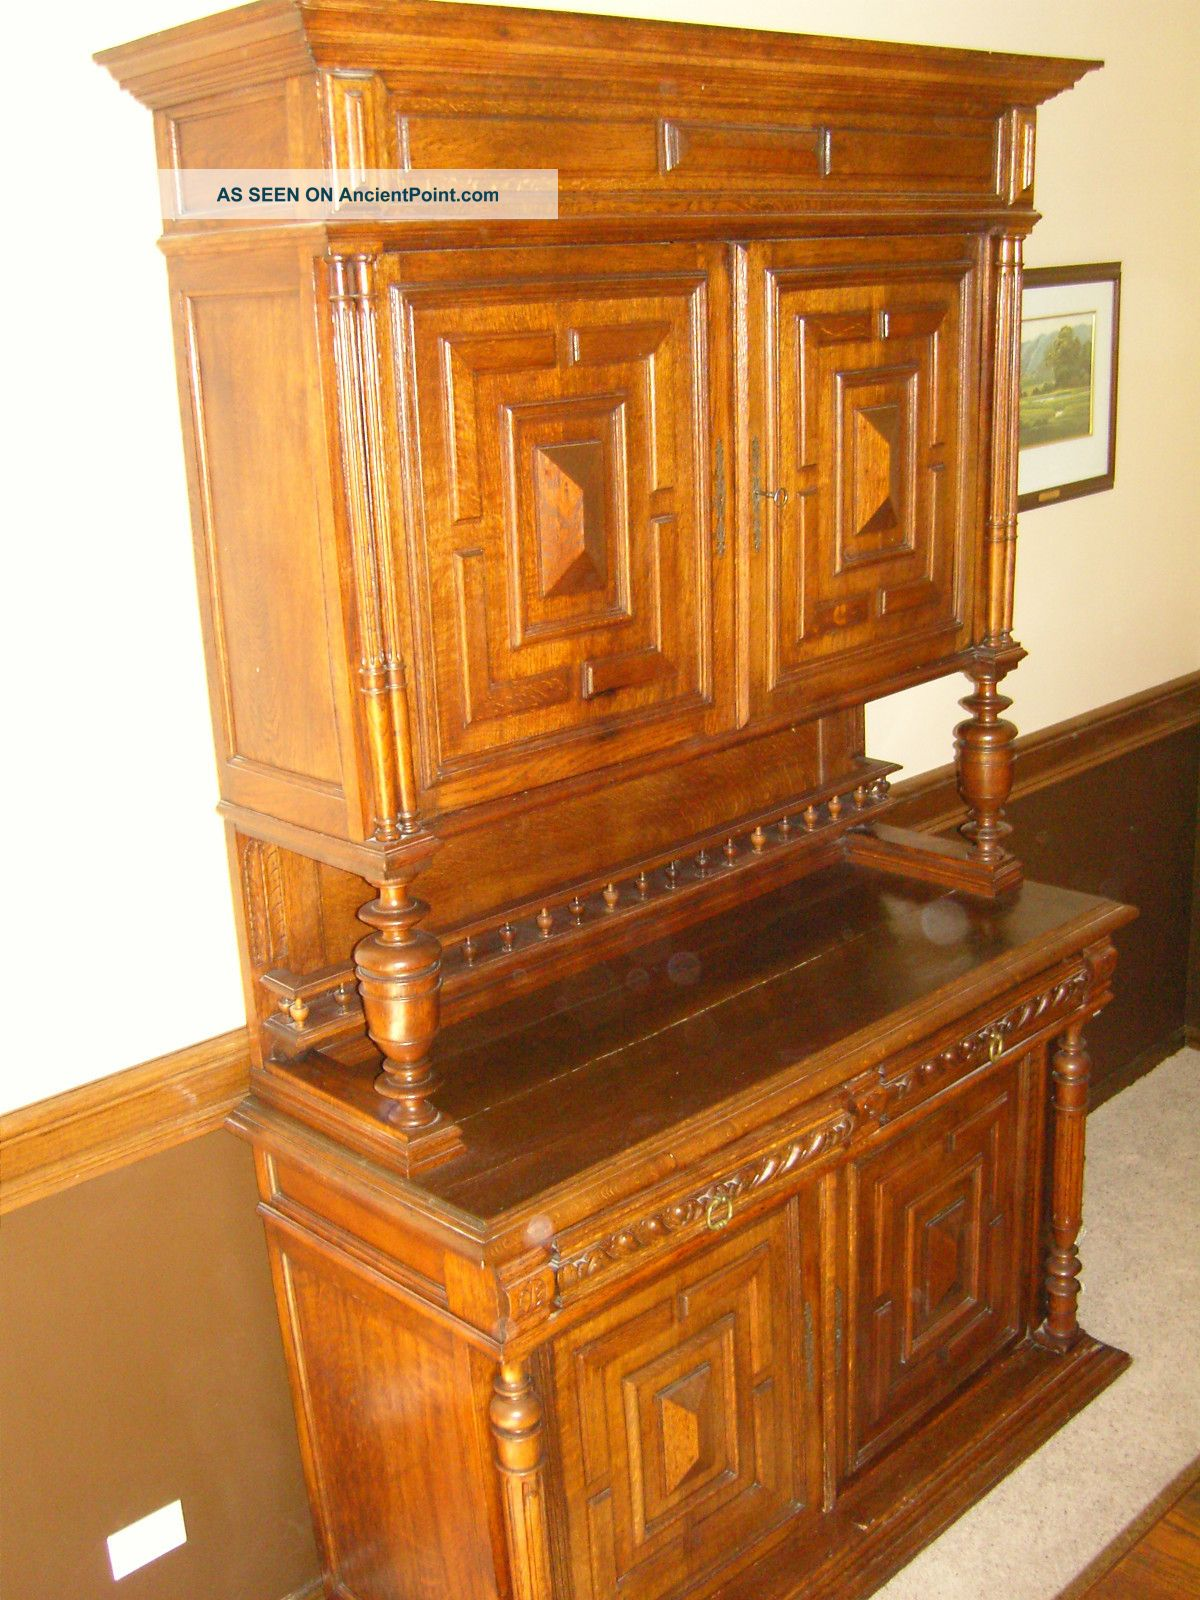 Antique Carved Solid Oak French Renaissance Butler ' S Sideboard Buffet Plate Rack 1800-1899 photo